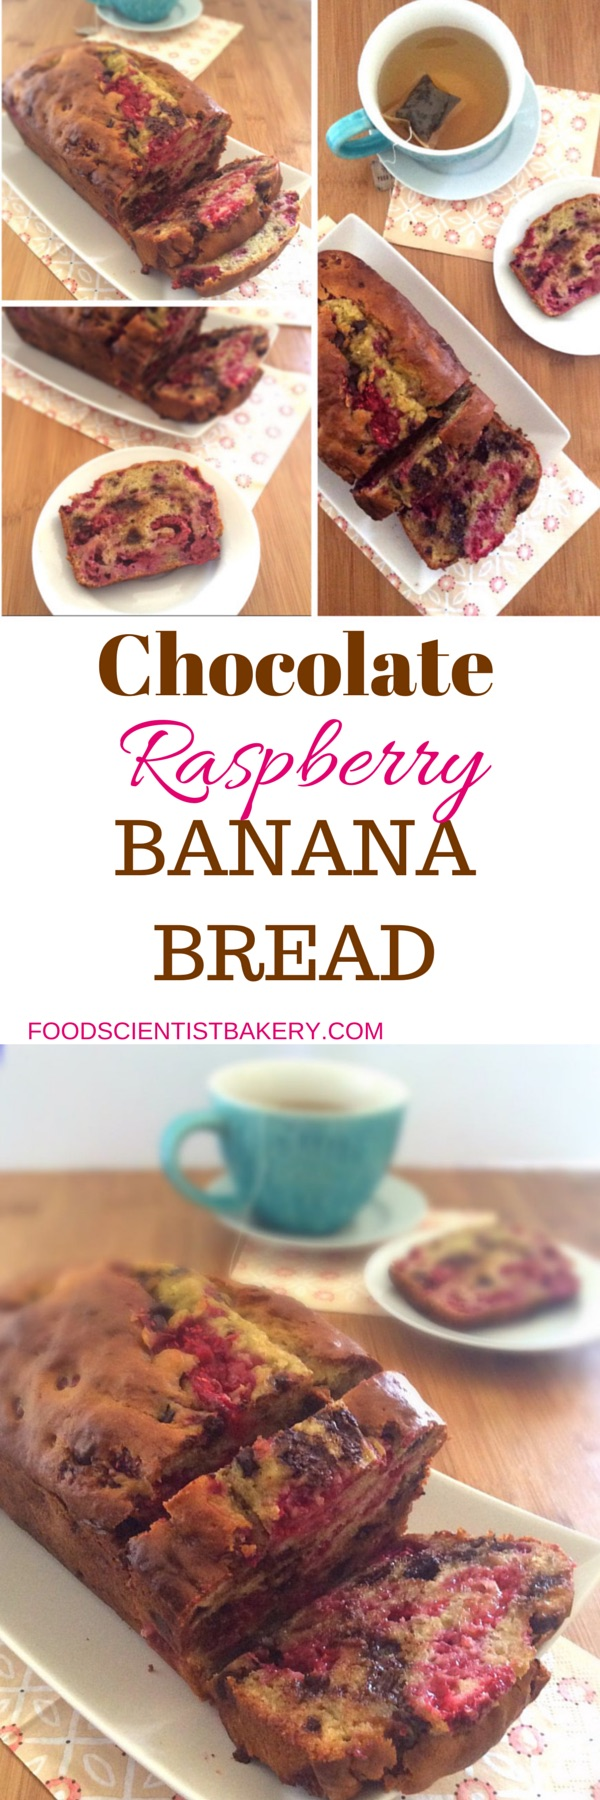 Chocolate Raspberry Banana Bread- a delicious twist on a classic!